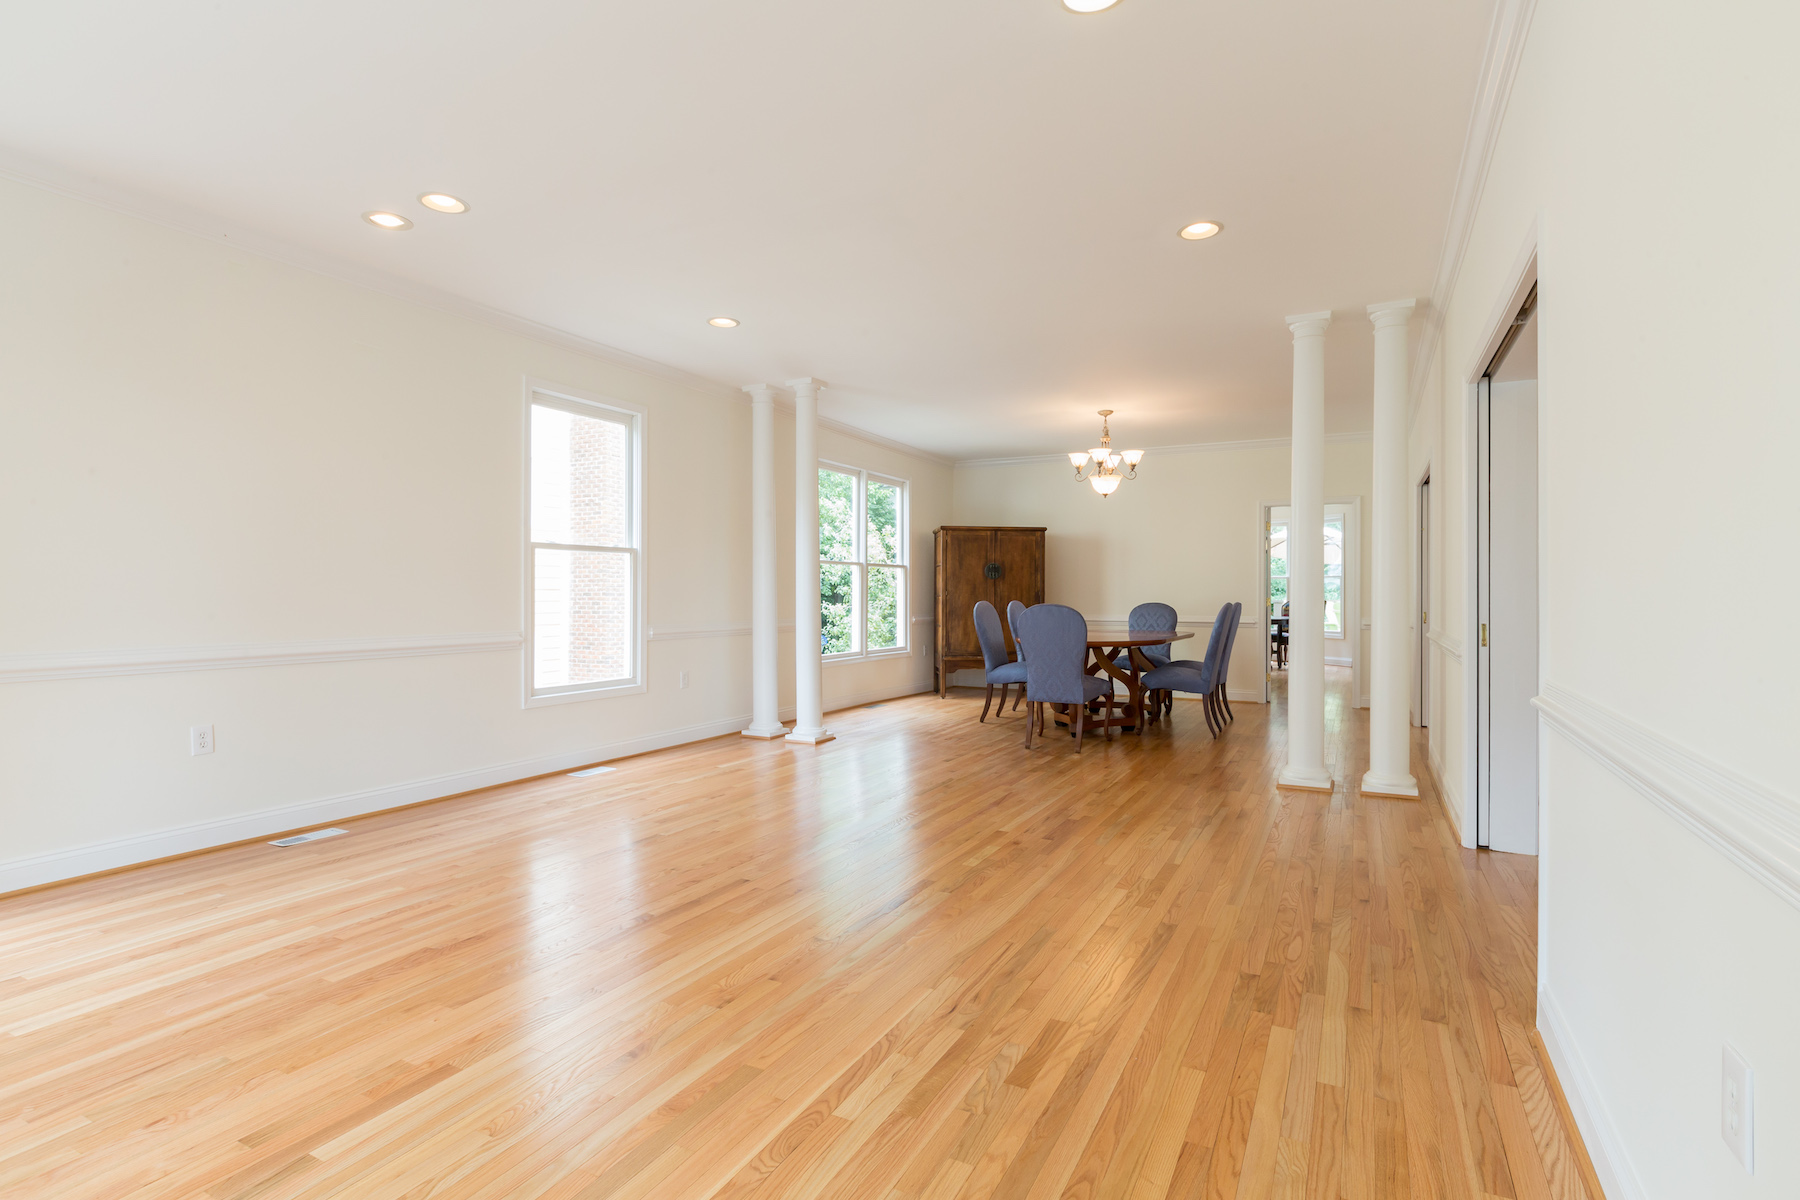 Additional photo for property listing at Berkley 1825 47th Place Nw Washington, District Of Columbia 20007 United States